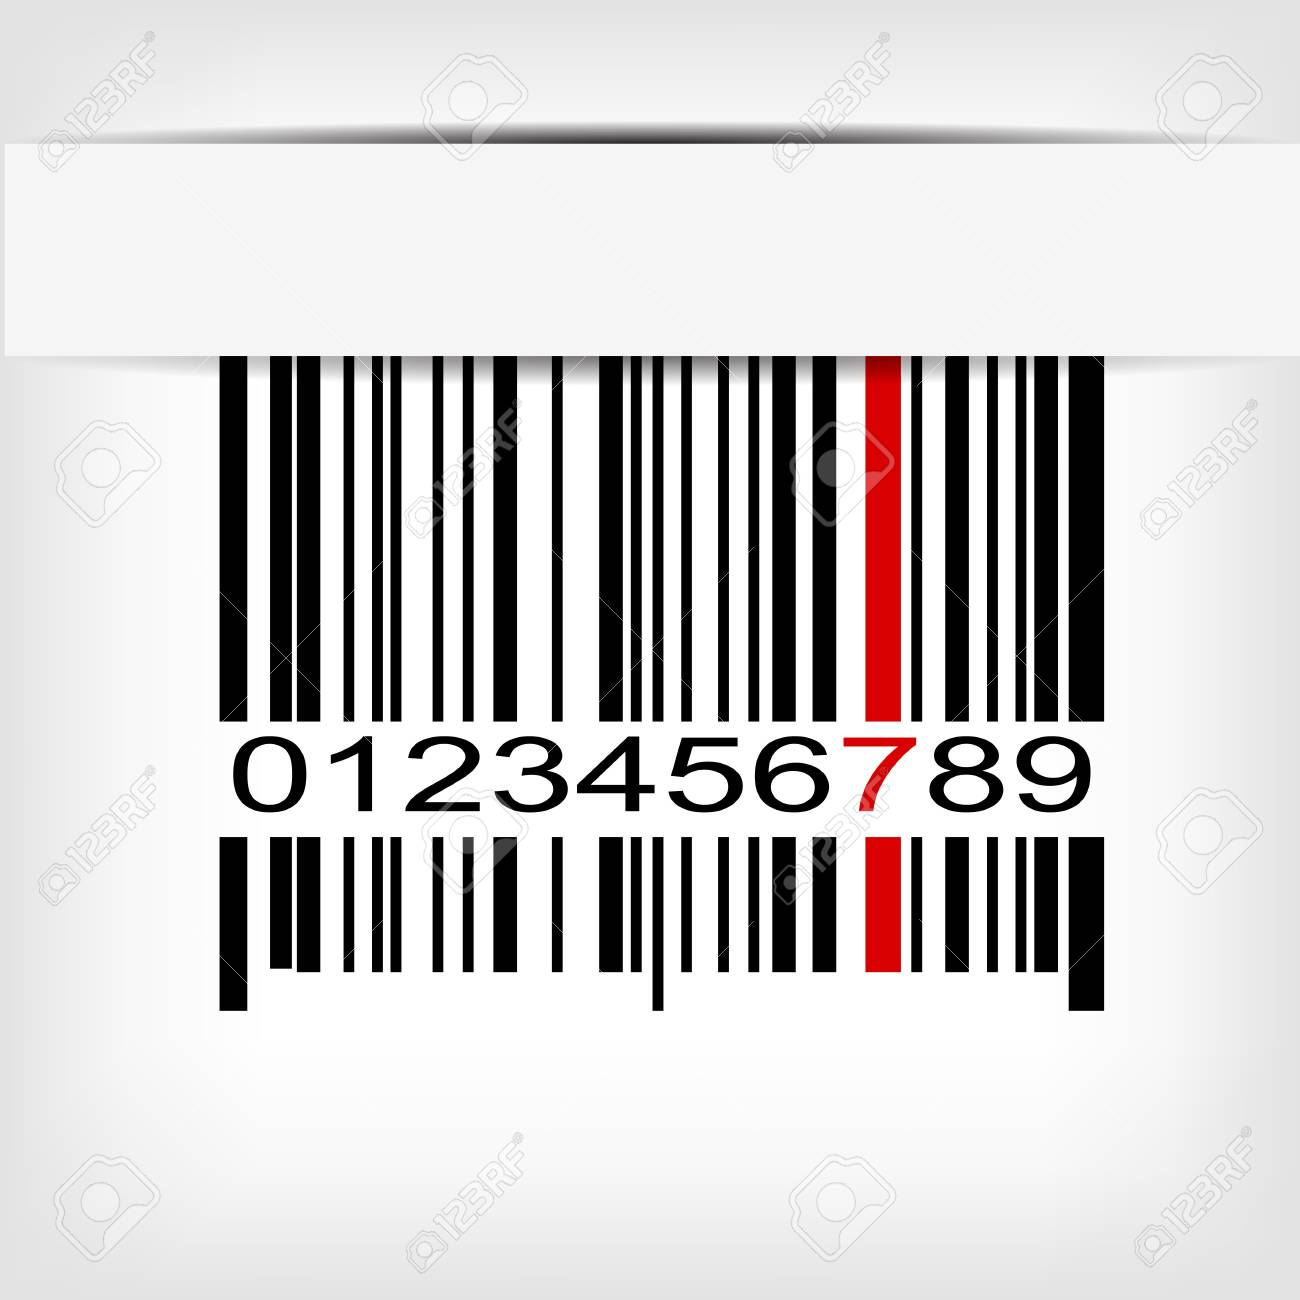 Barcode image with red strip -  illustration Stock Vector - 15727215